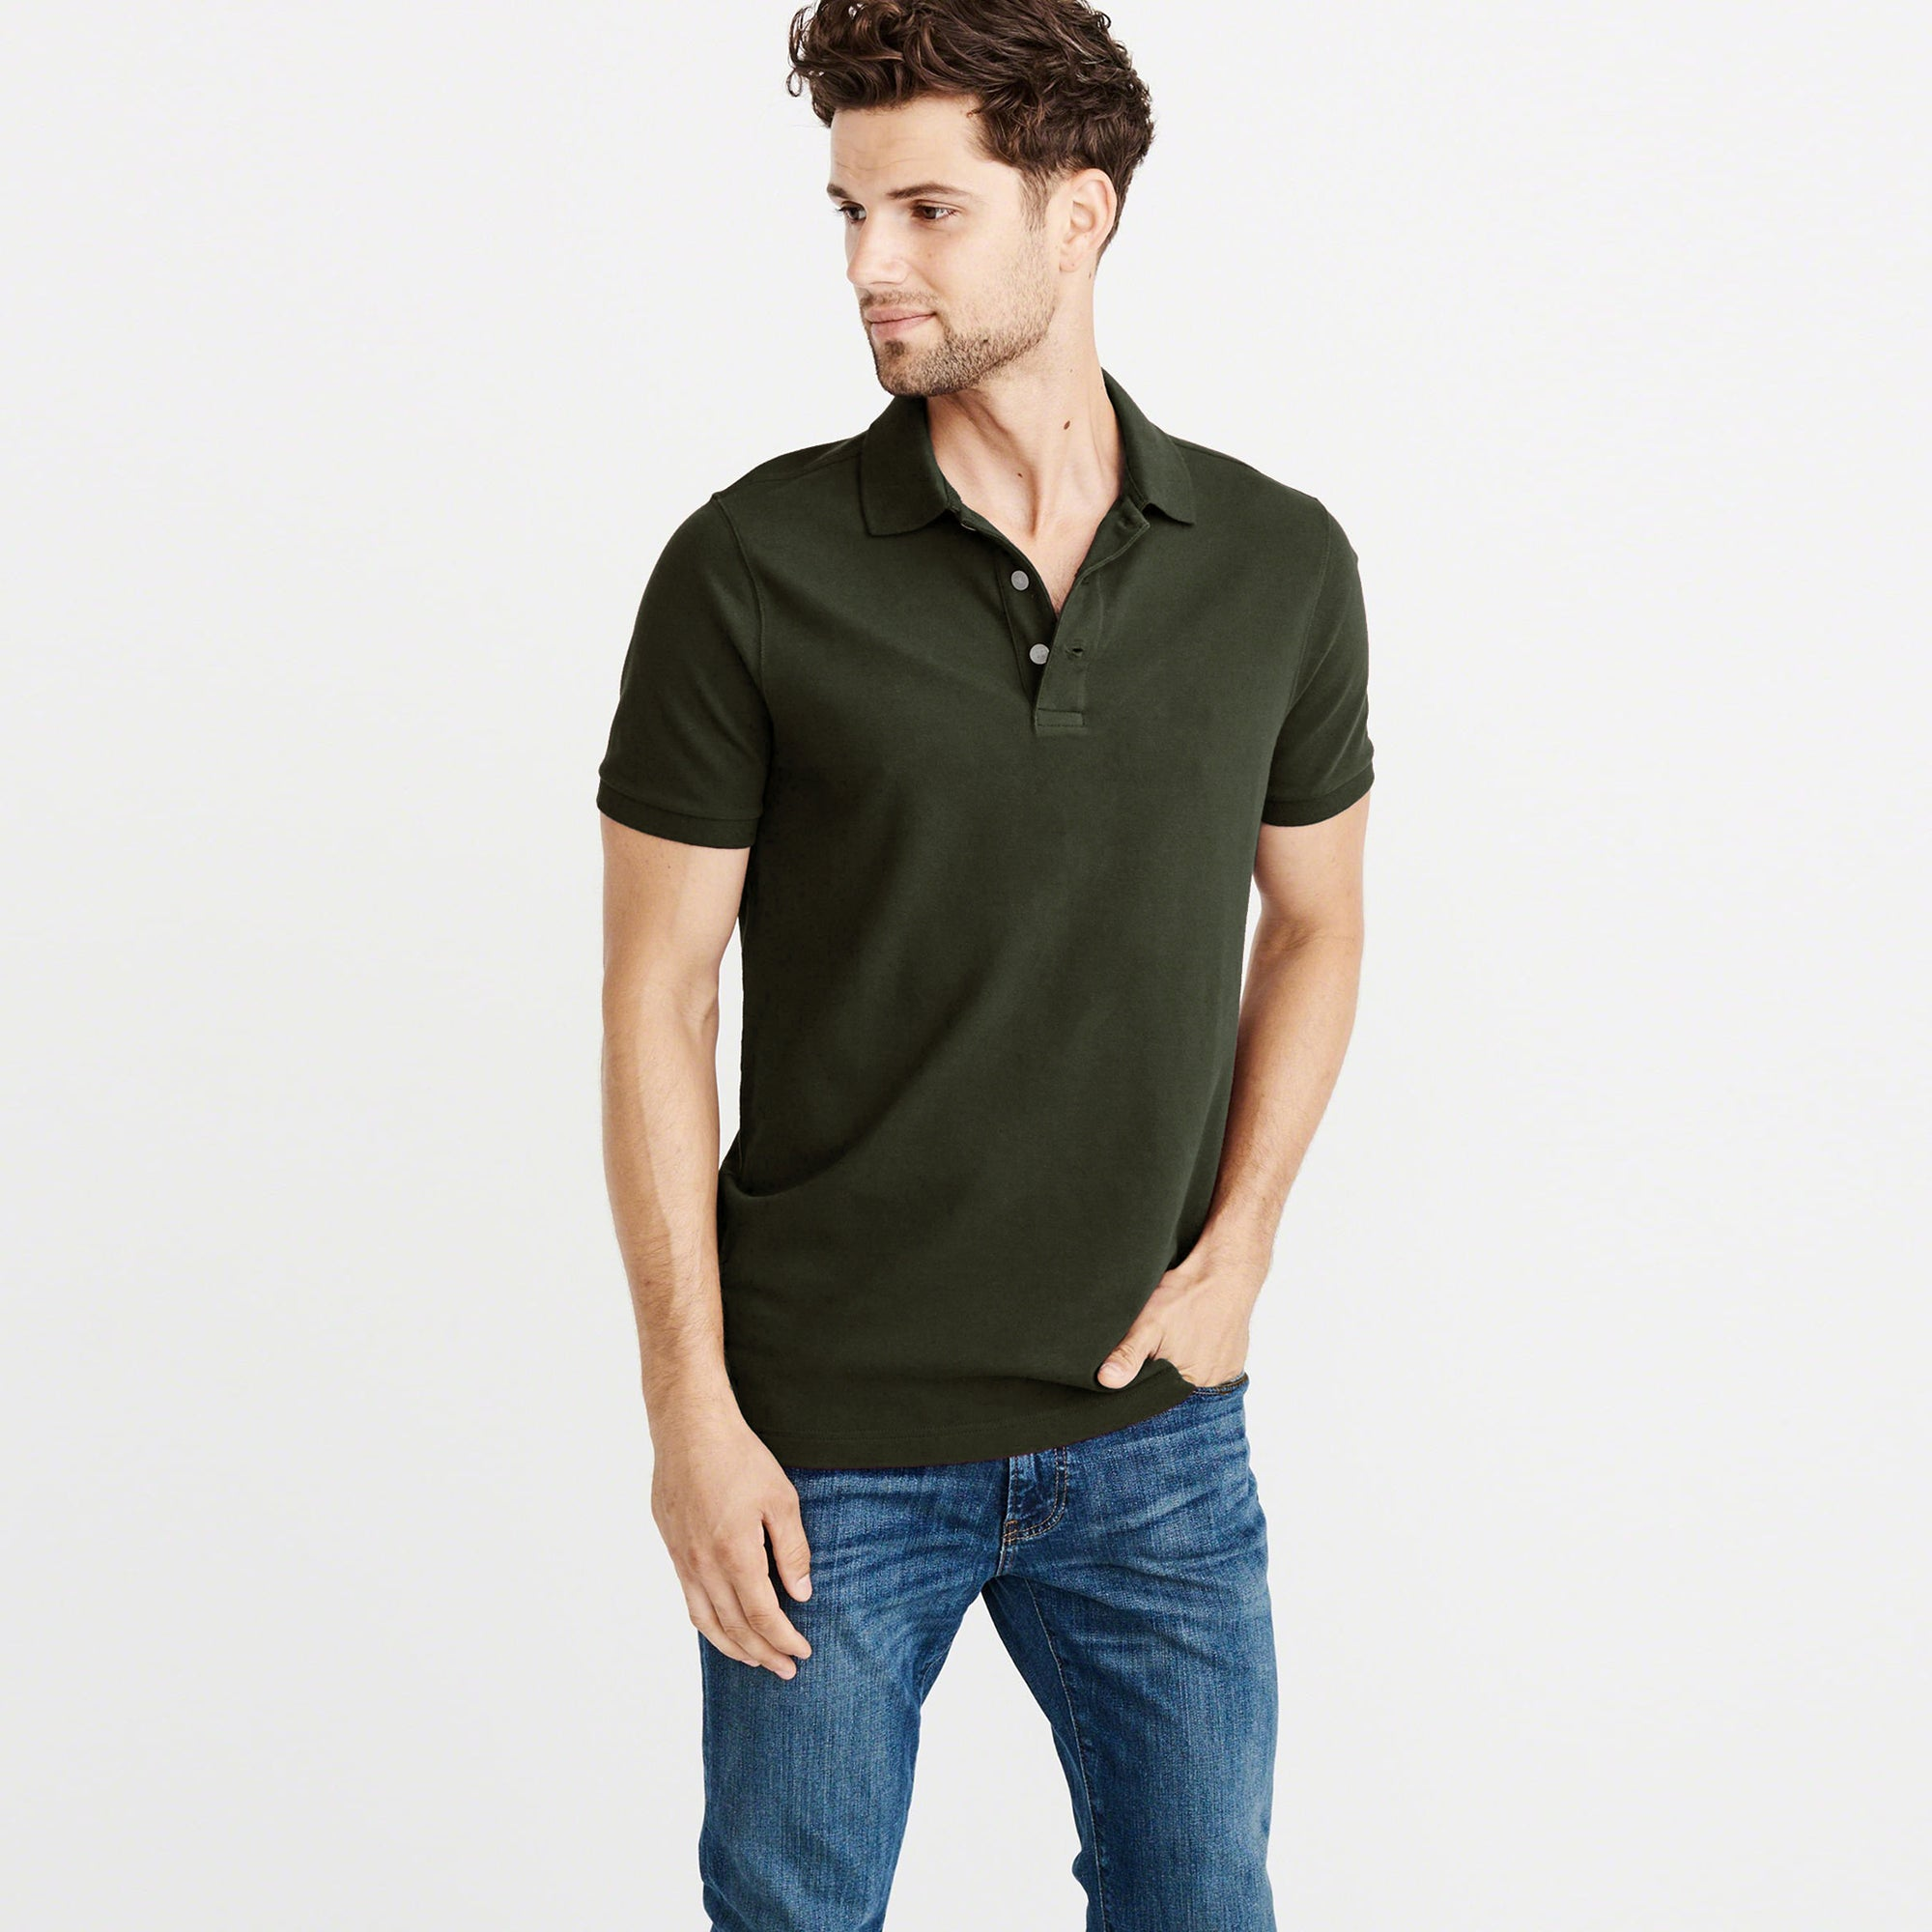 Chams Authentic P.Q  Polo Shirt For Men-Dark Olive-BE5731